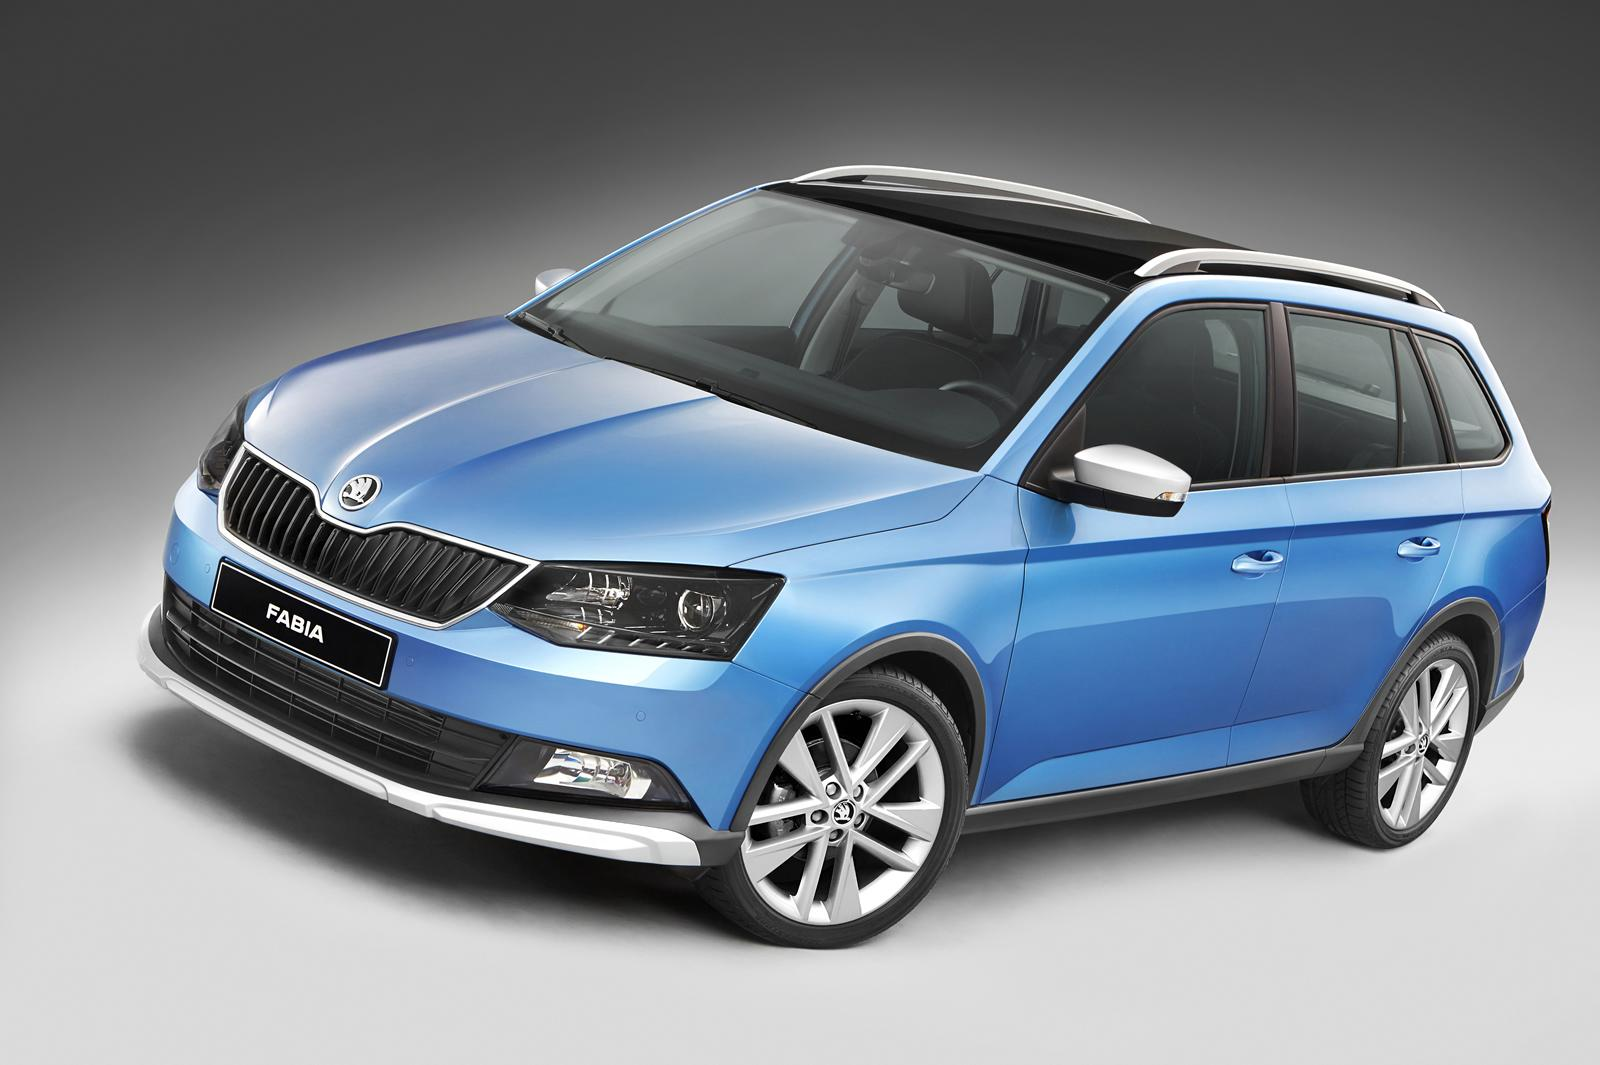 skoda fabia combi scout body kit debuts without awd or raised suspension autoevolution. Black Bedroom Furniture Sets. Home Design Ideas